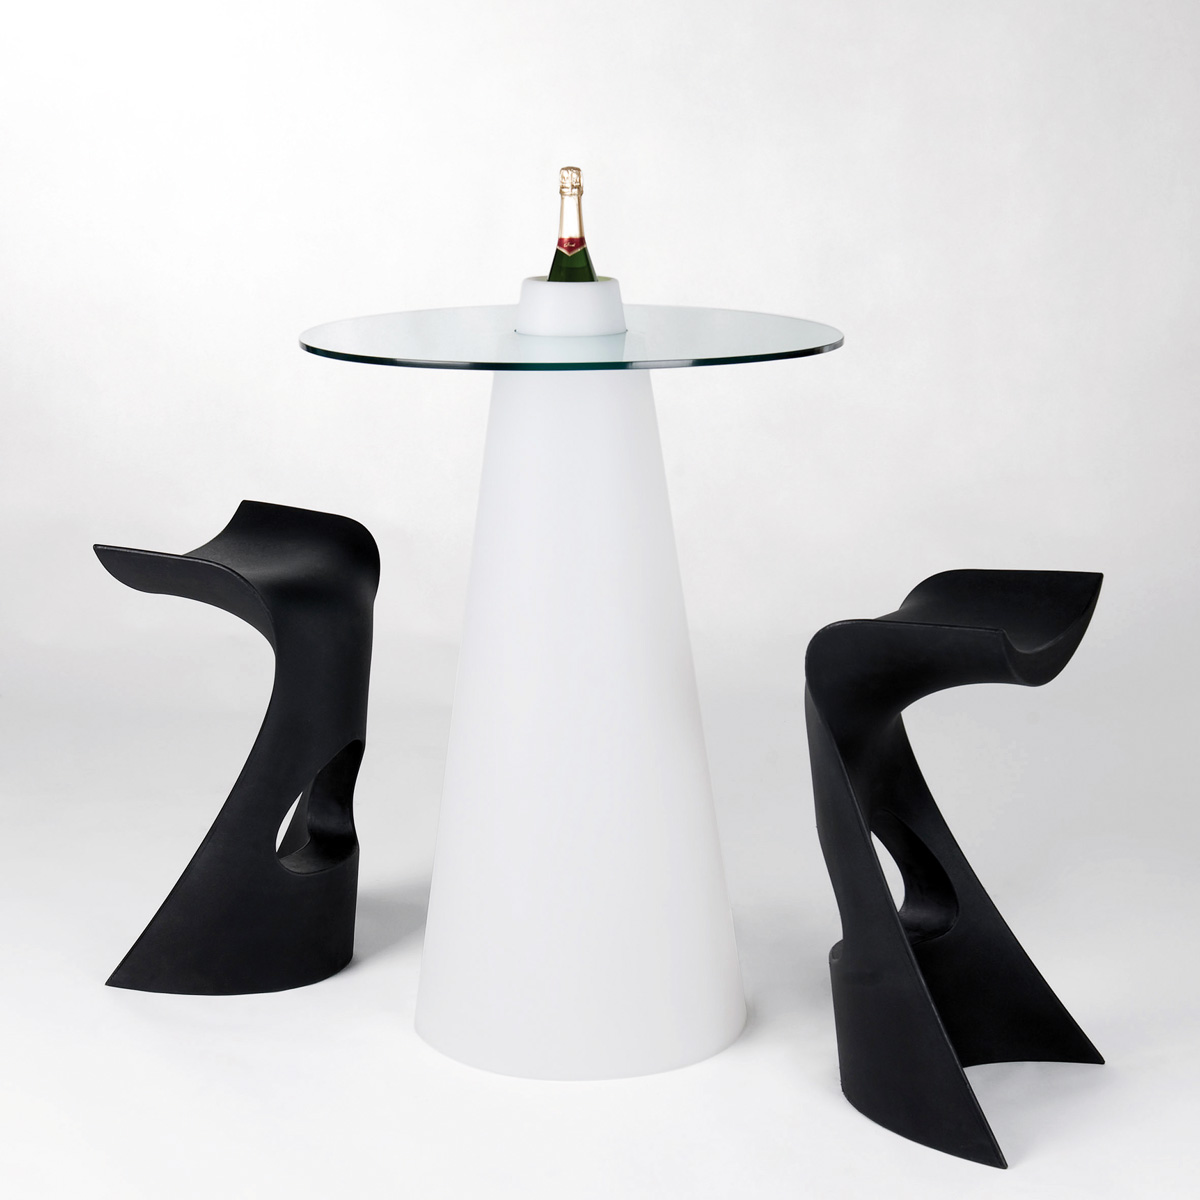 Peak bar table from Slide